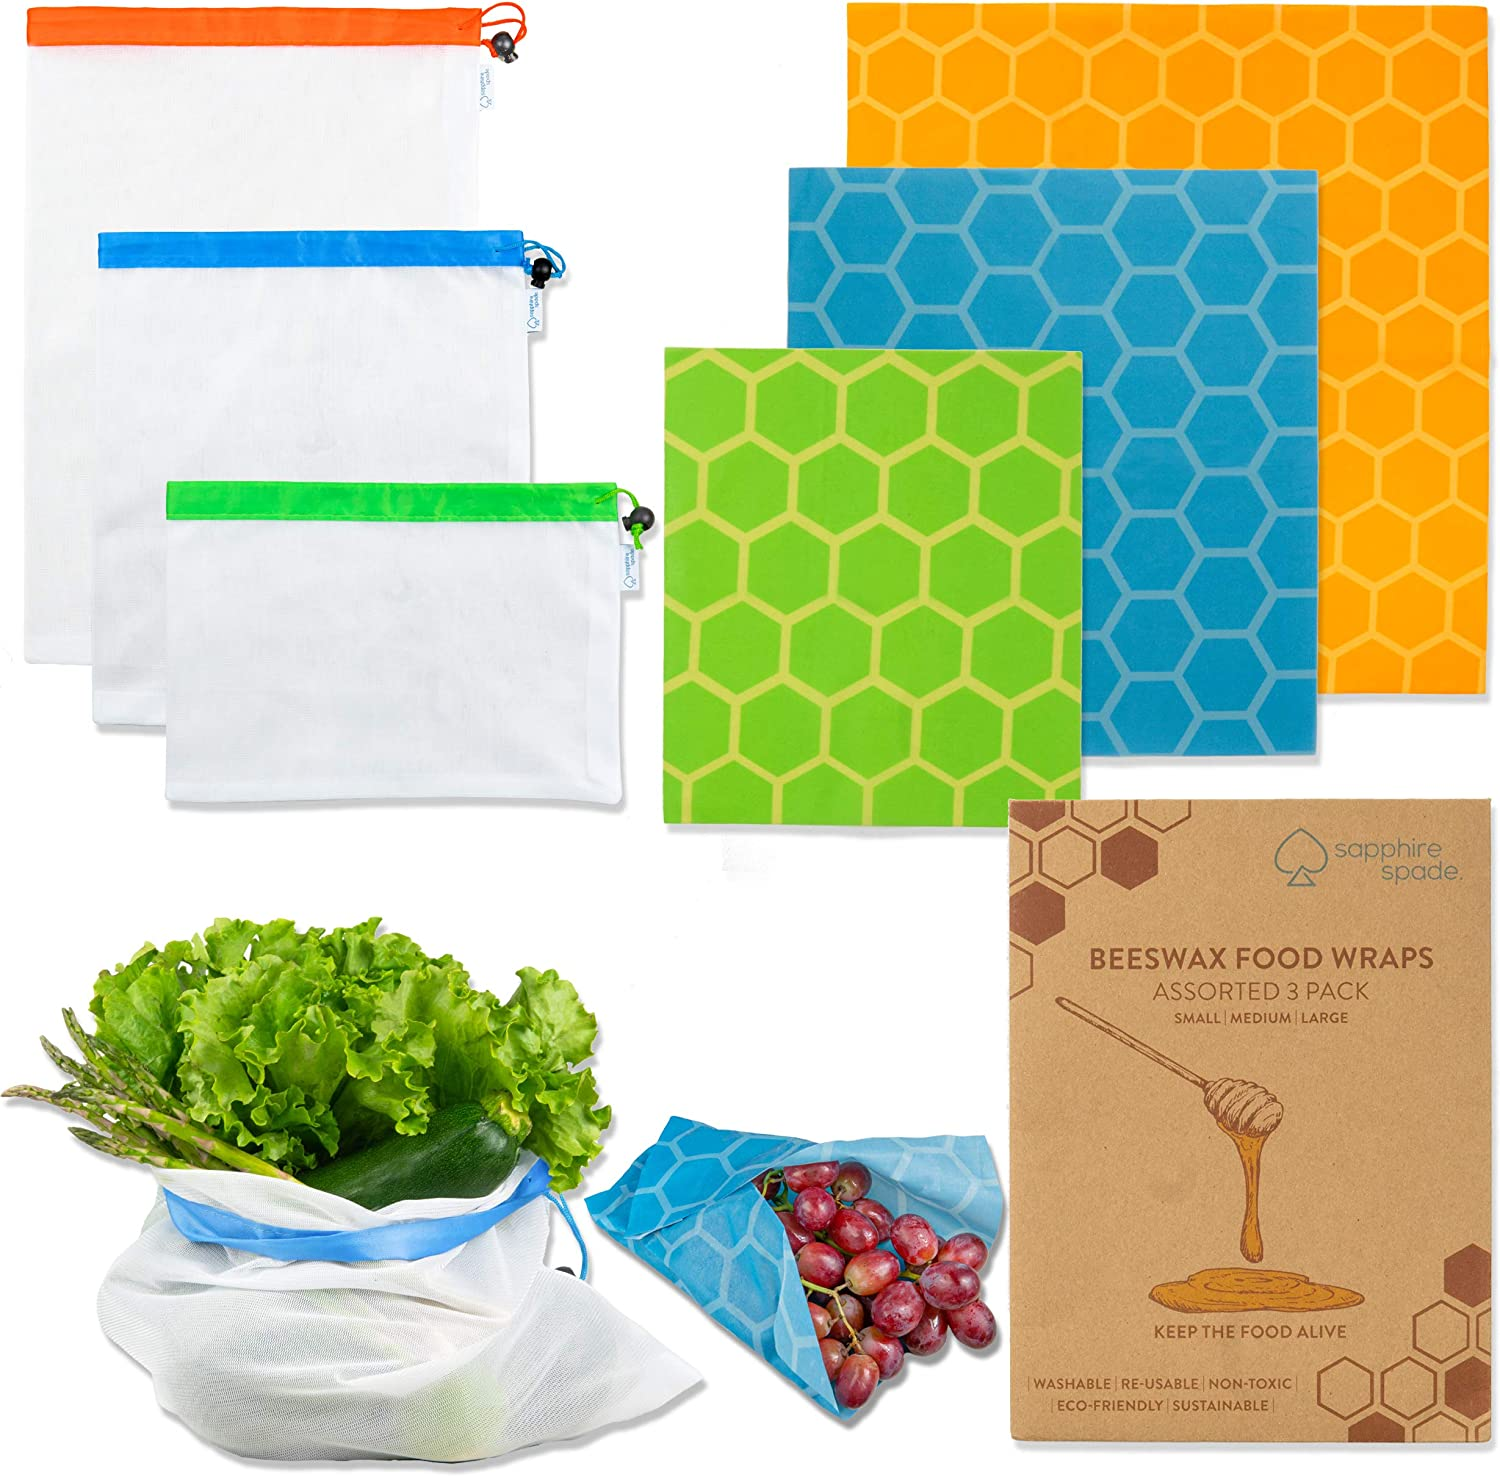 Sapphire Spade Premium Assorted 3 Pack Beeswax Food Wrap and Produce Bags (6 Pack Bundle) | Reusable, Eco Friendly, Sustainable, Plastic Free Alternative Food Storage | Small, Medium, Large Sizes (6)